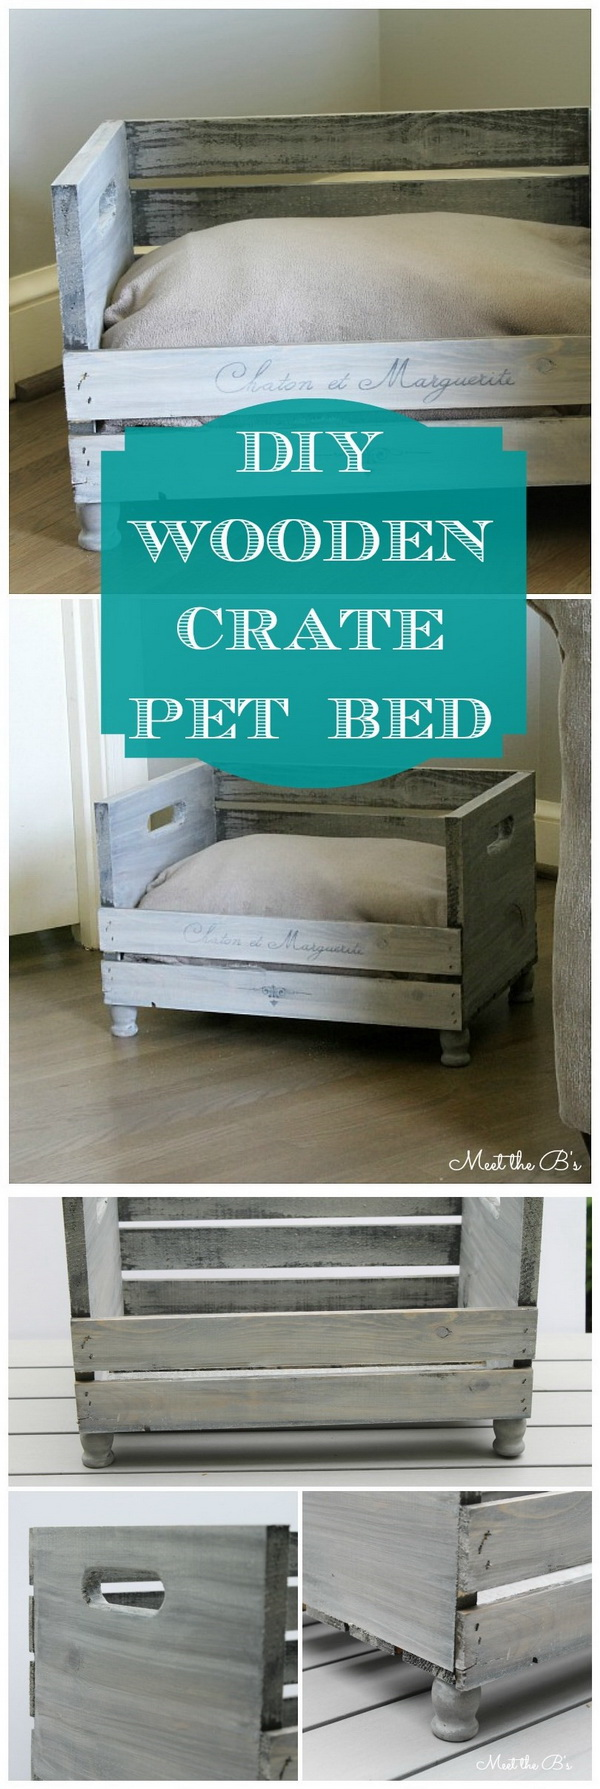 DIY Crate Pet Bed. A creative and awesome idea for repurposing the wooden crates with this DIY pet bed! A cute cat furniture that also matches your decor!